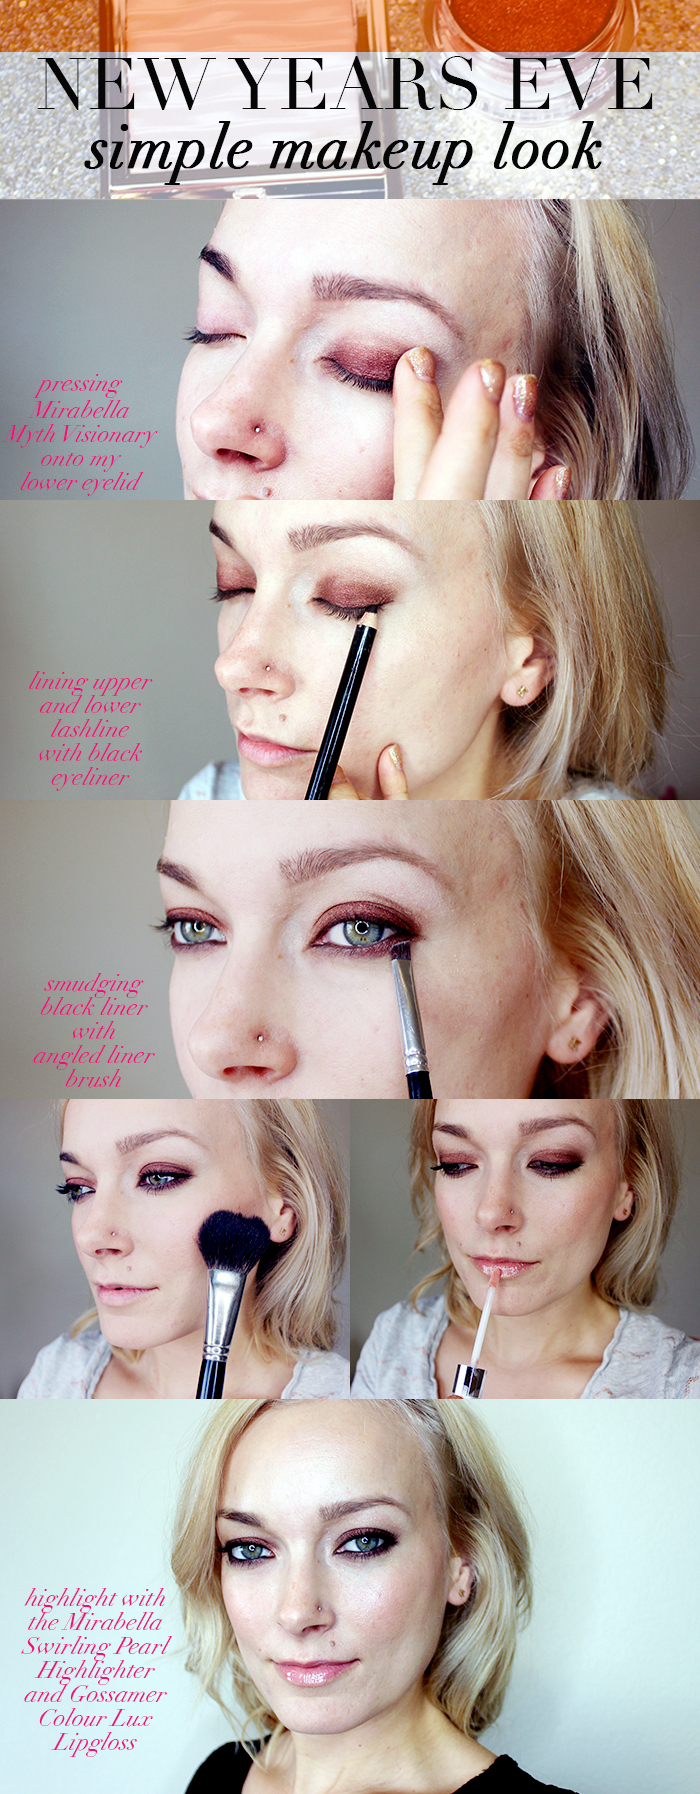 Mirabella New Years Eve Makeup Look